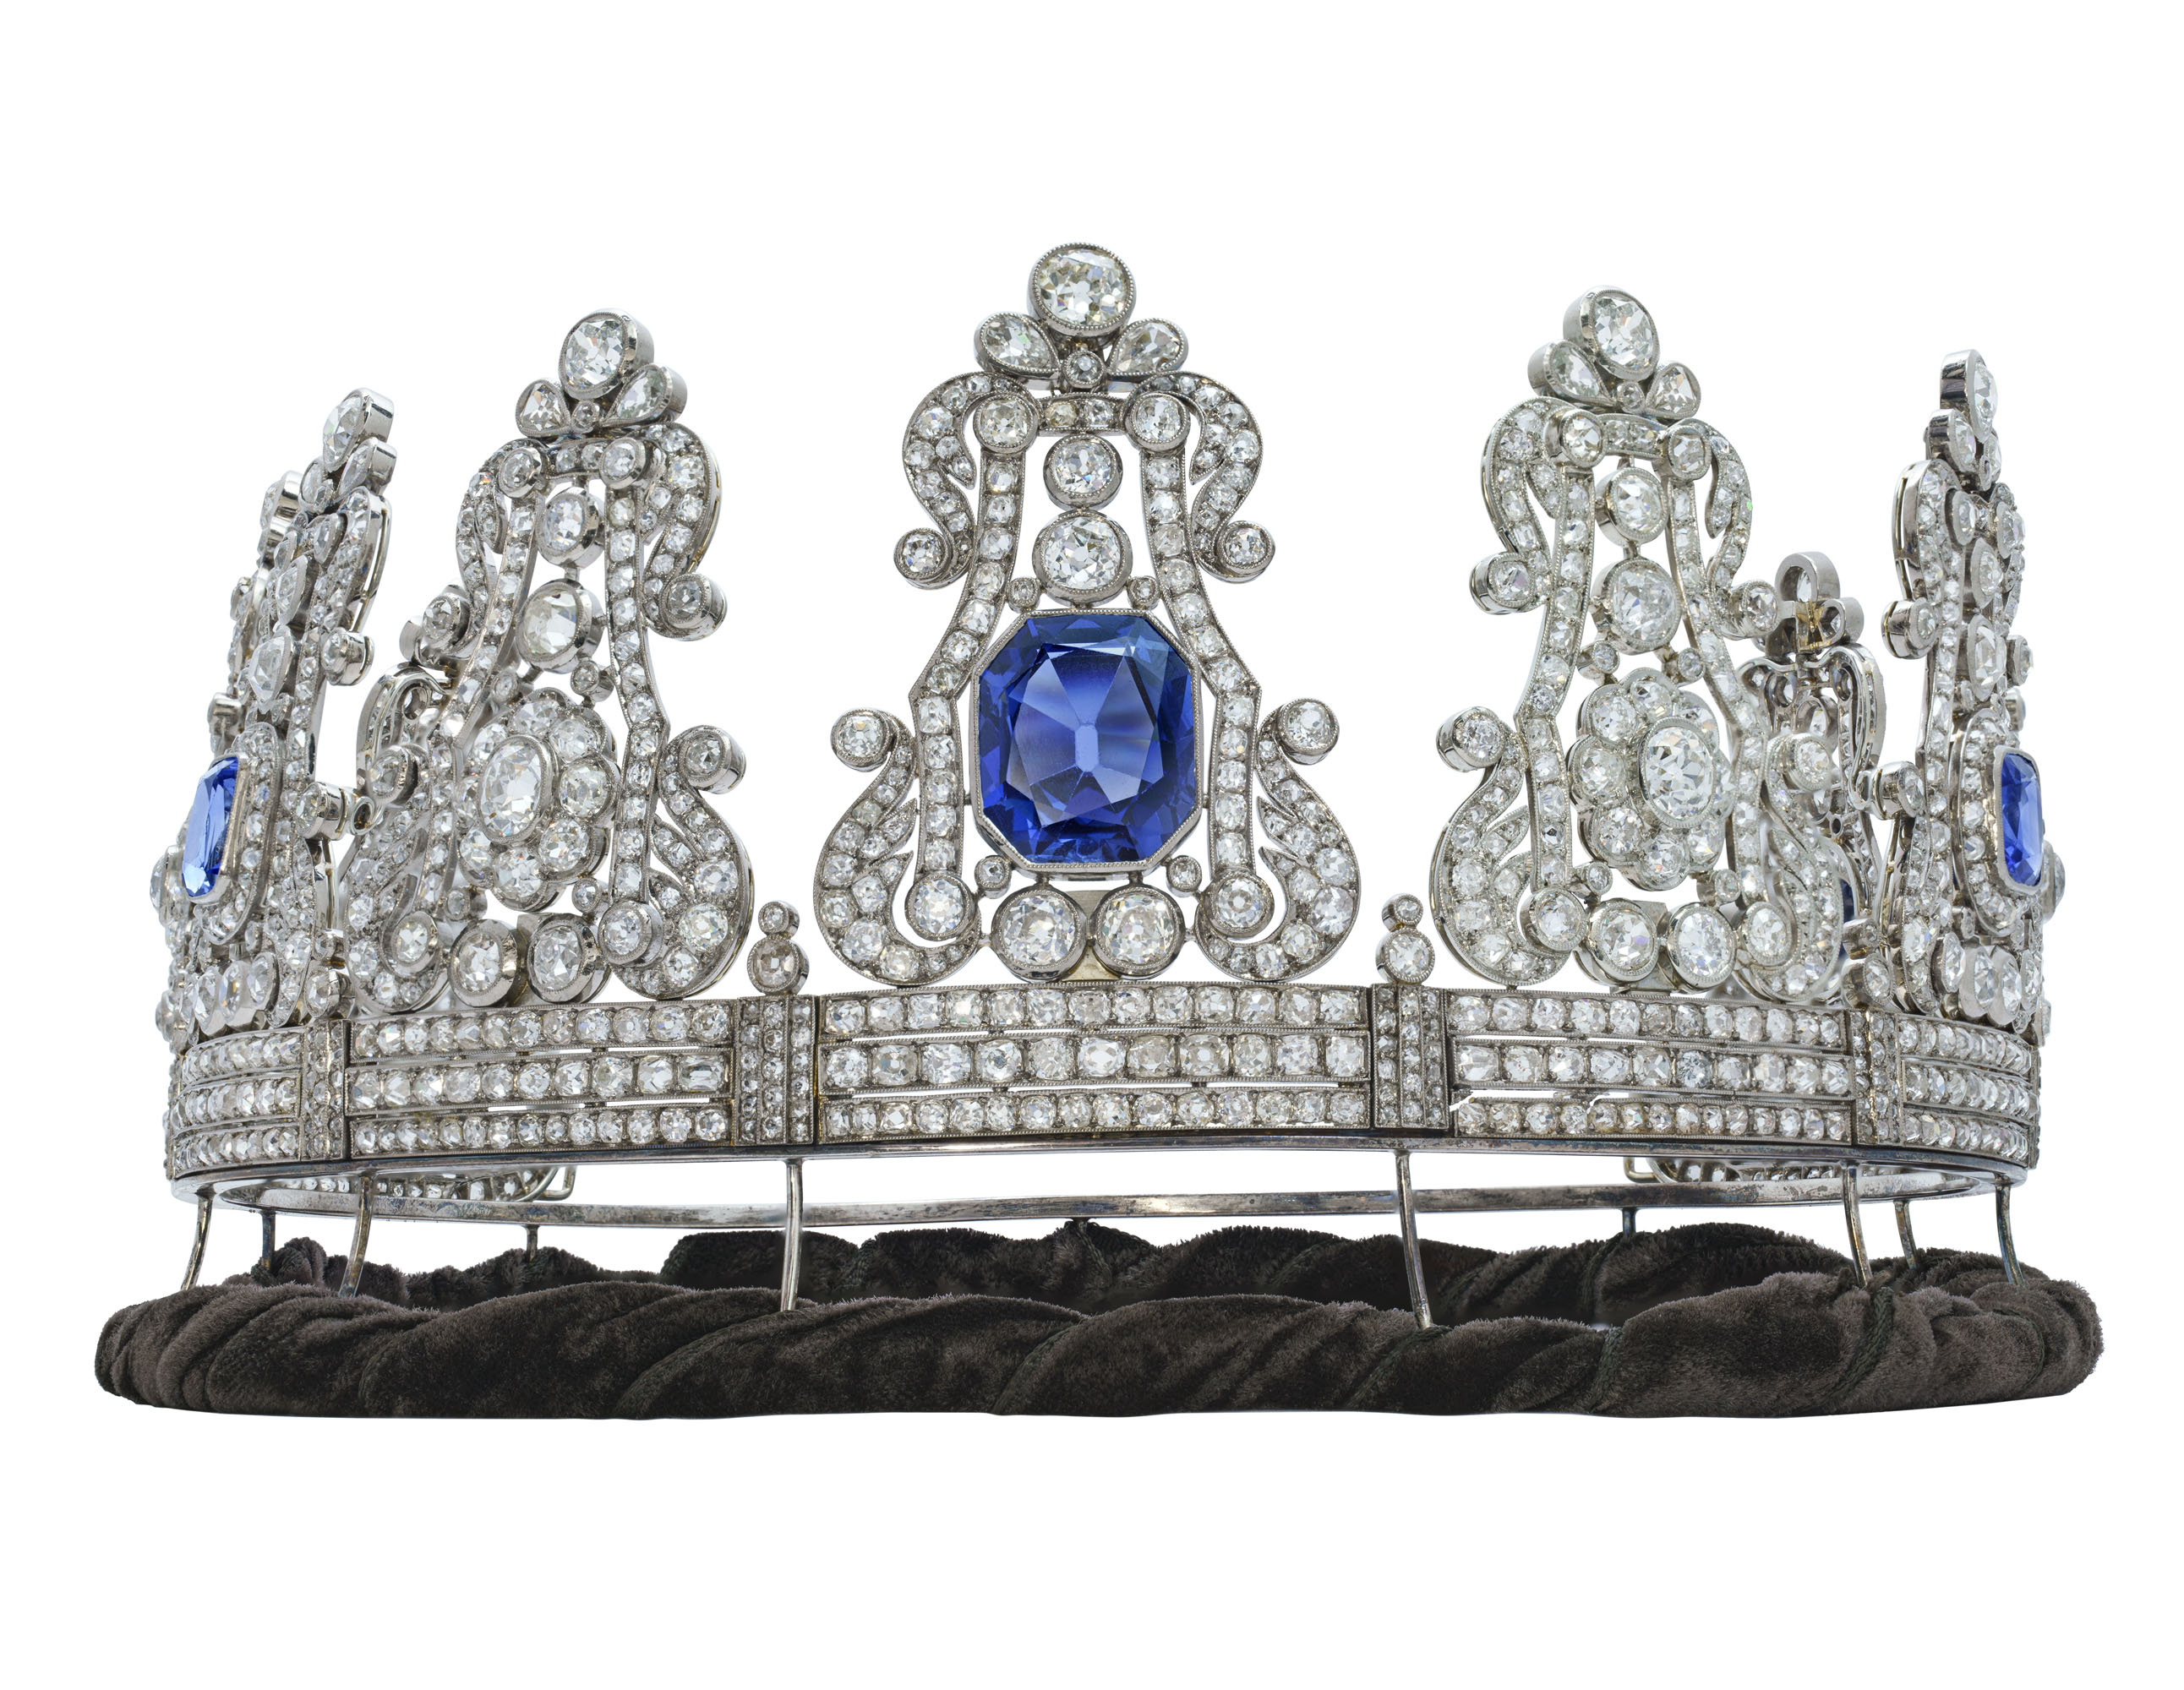 IMPORTANT 19TH CENTURY SAPPHIRE AND DIAMOND CROWN